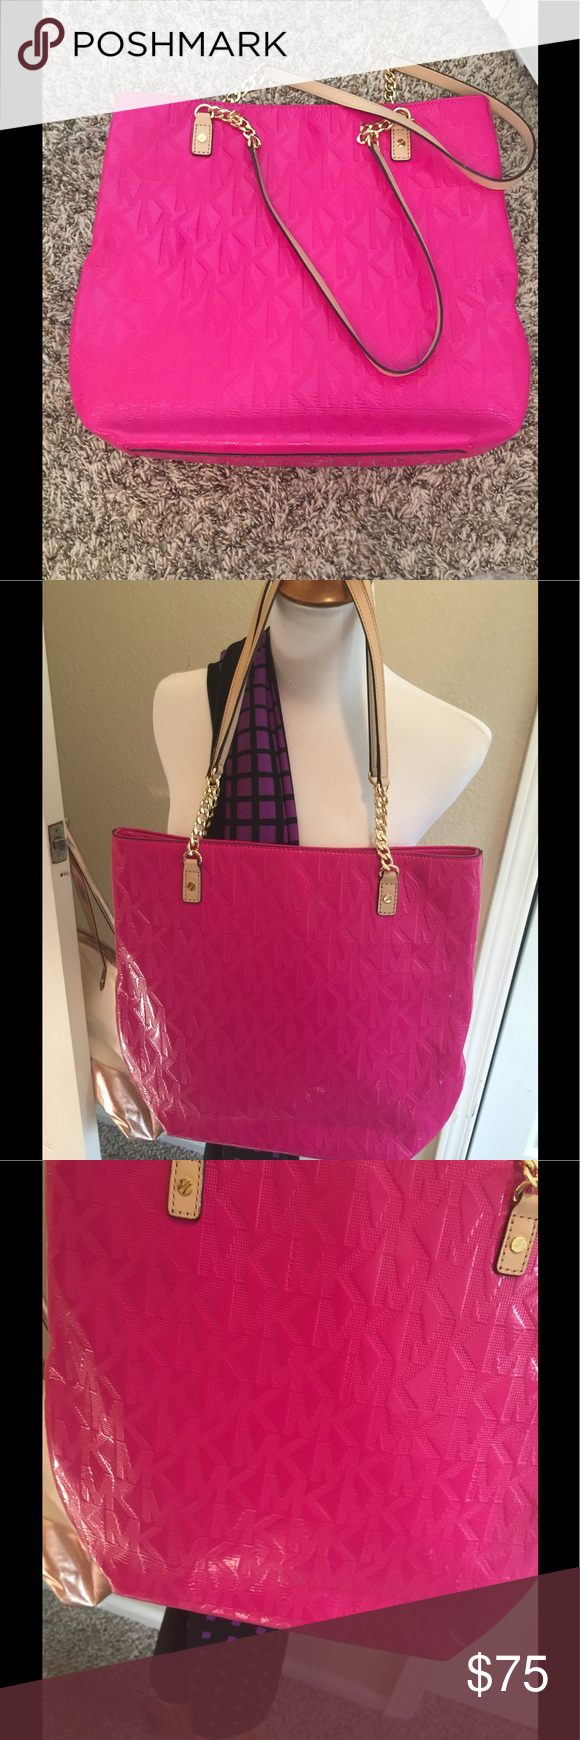 a2e28a8f1234 Beautiful Authentic MK Pink Tote Lovely authentic Michael Kors bag Tote 12  x 13 x 3.5 Gold hardware Excellent clean condition Unused condition Michael  Kors ...